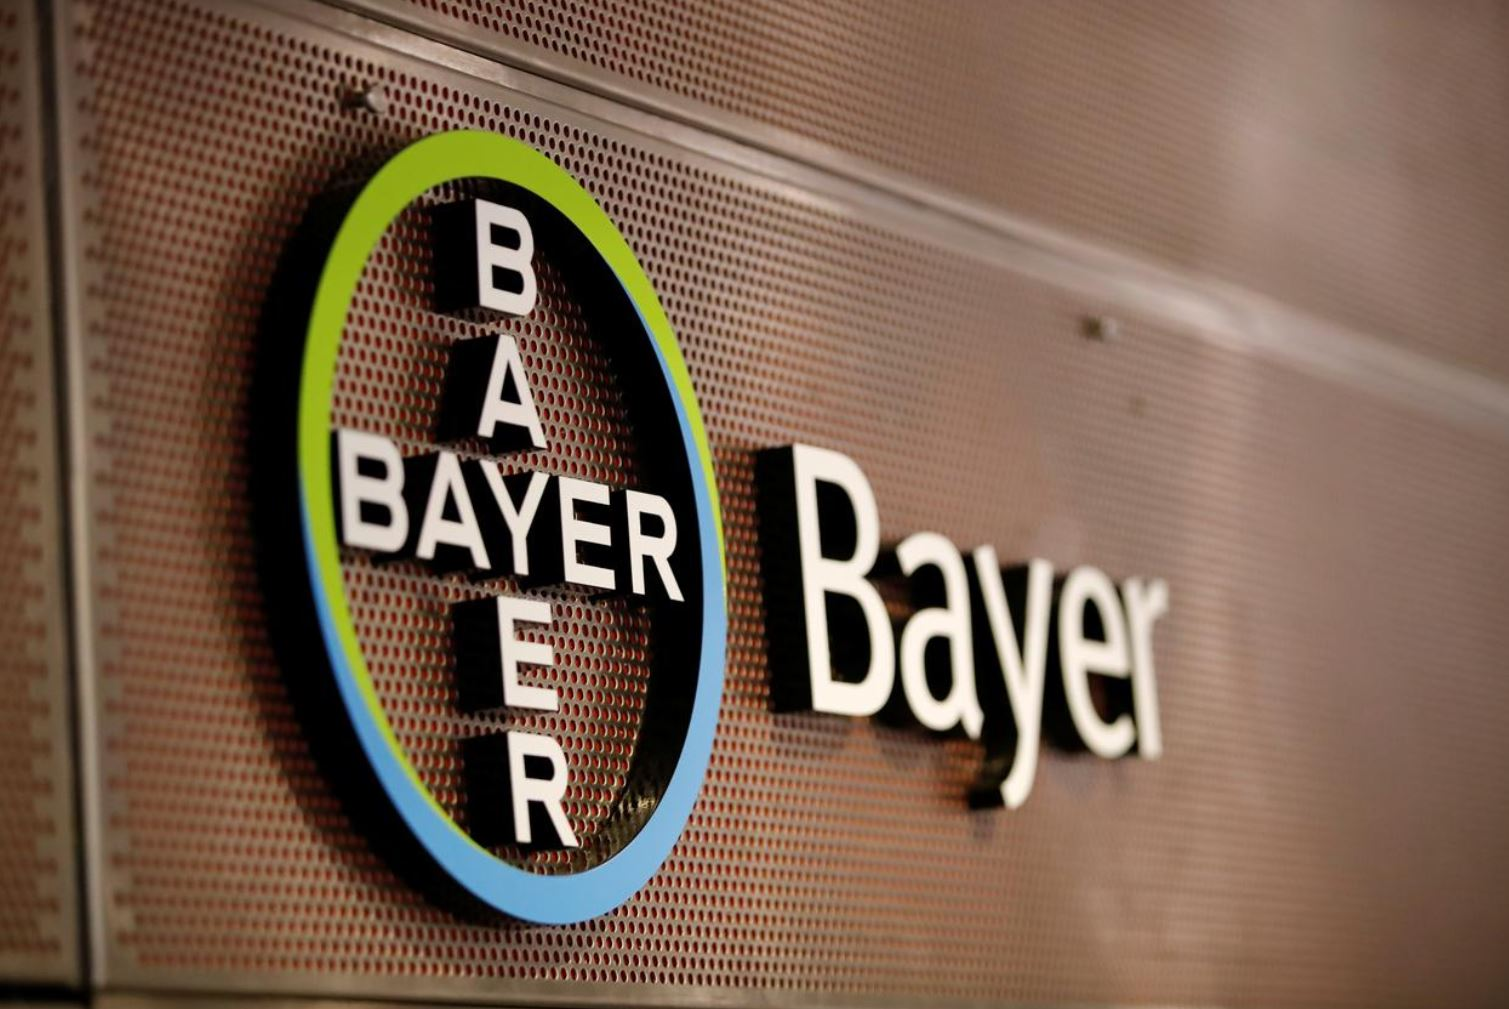 Bayer study to reduce treatment burden for patients with macular degeneration - Pharma News